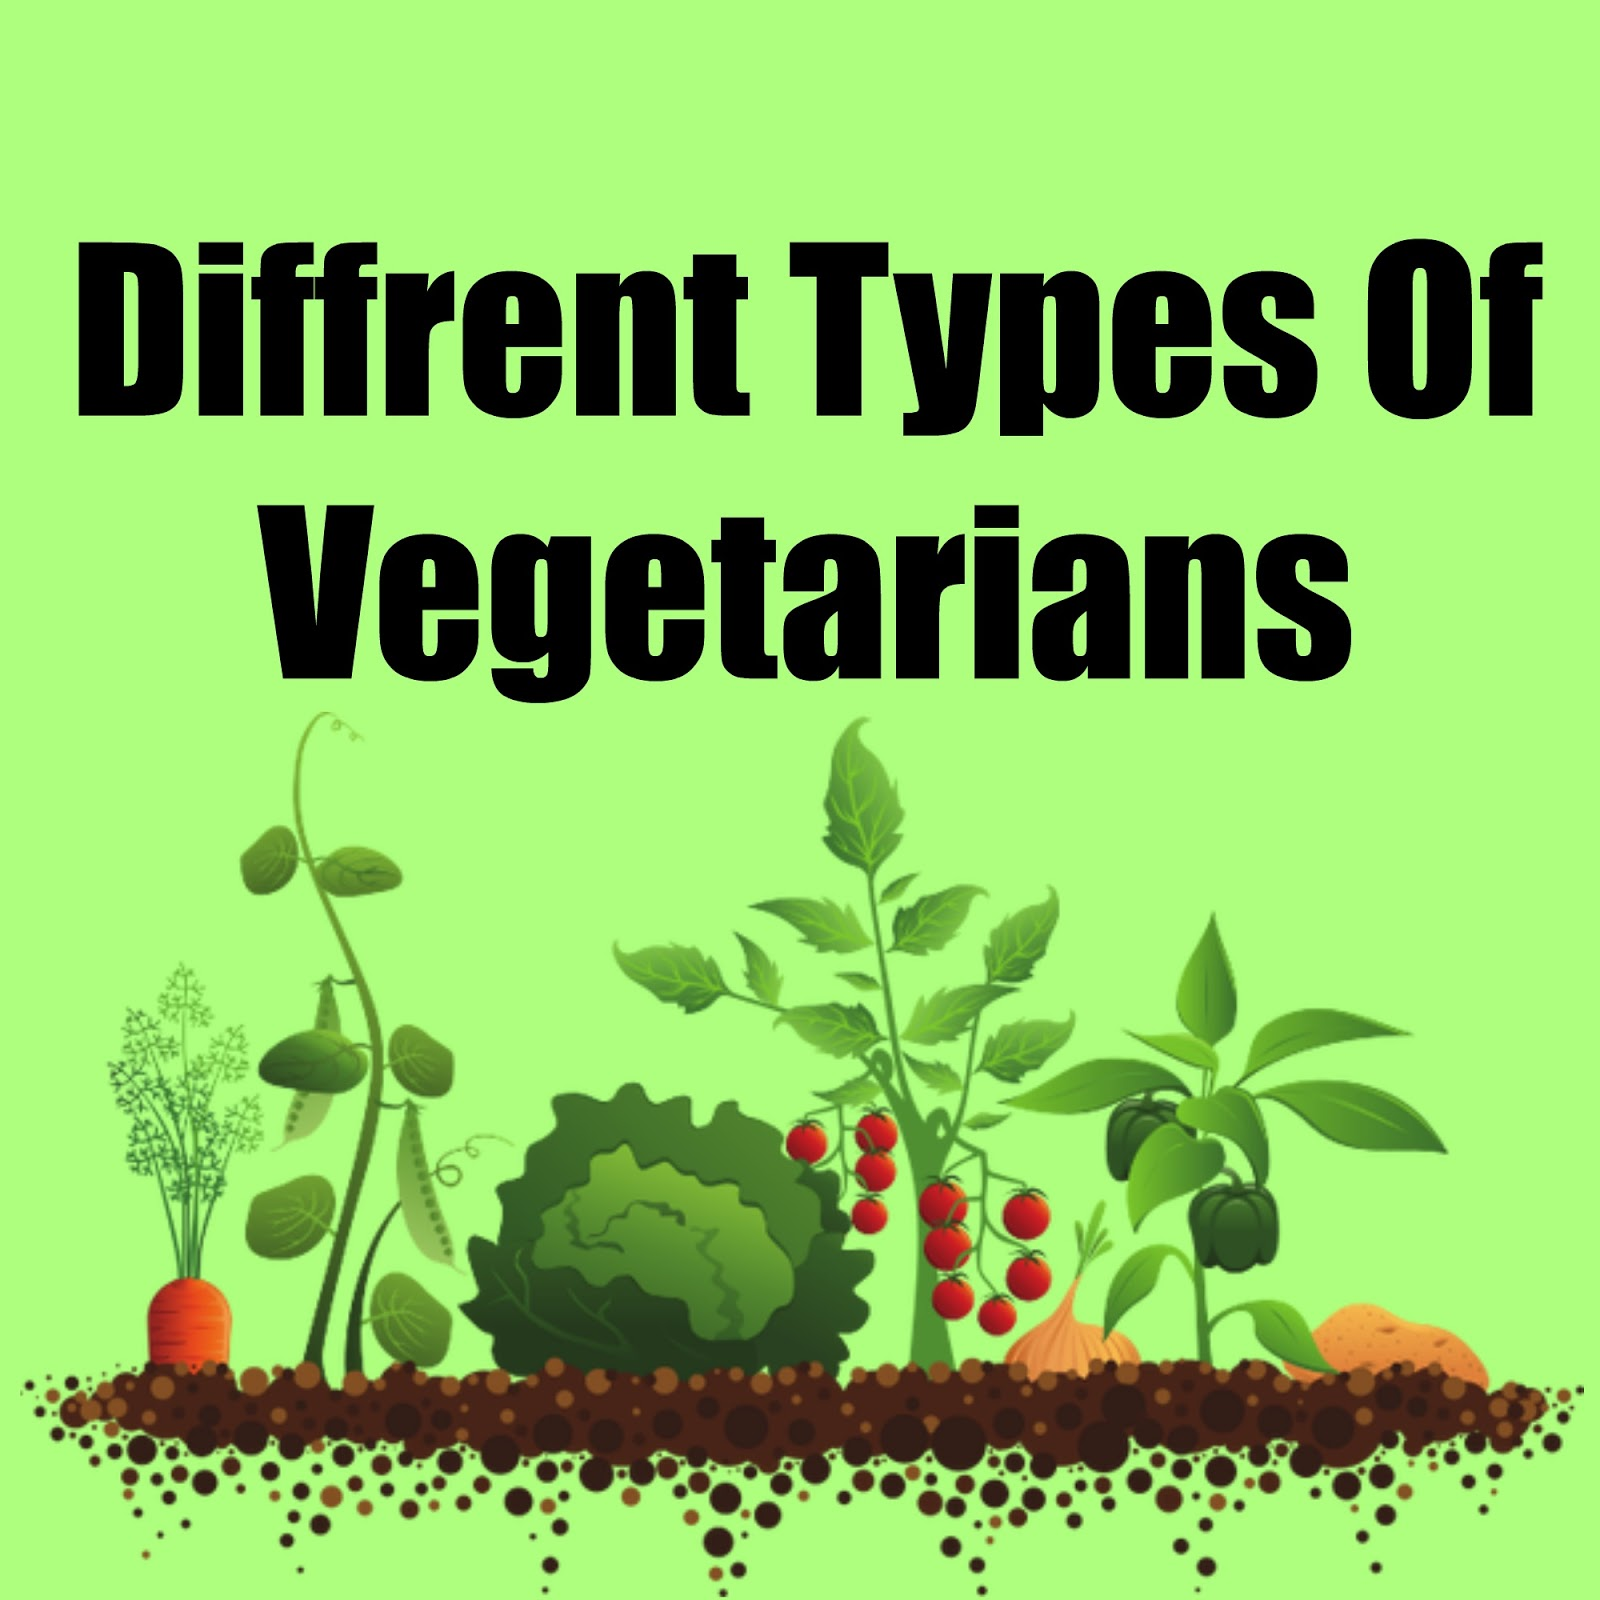 the differences between different types of vegetarians Clearly the definition of a vegetarian does not stop at non consumption of meat, instead it includes four different types of vegetarians - lacto ovo vegetarian: it refers to a diet that excludes meat or flesh but may include eggs and milk (dairy products.